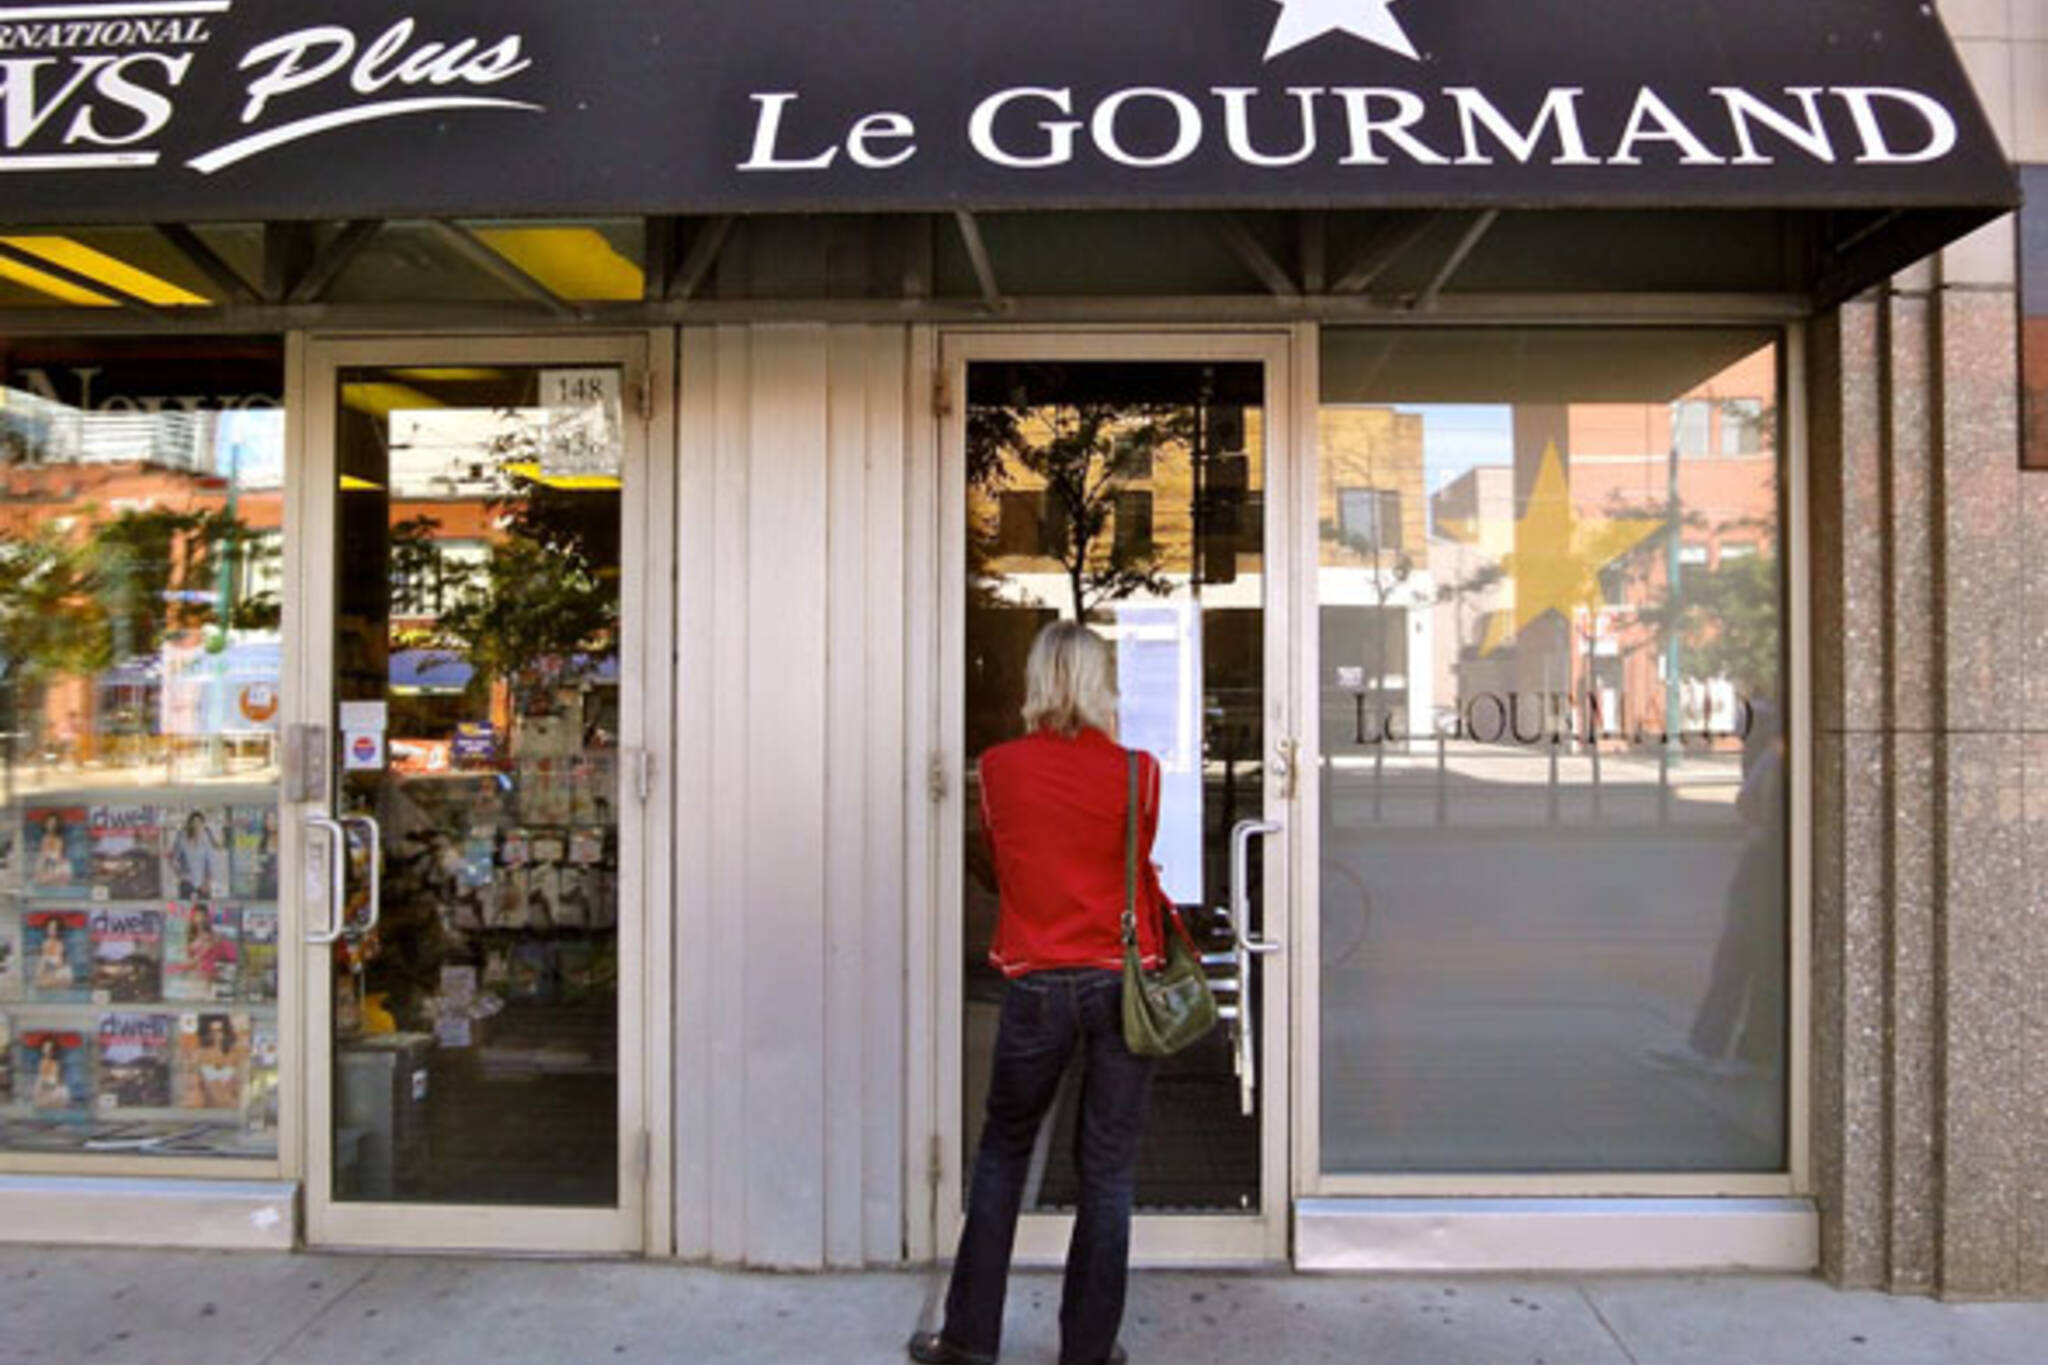 Le Gourmand Closed